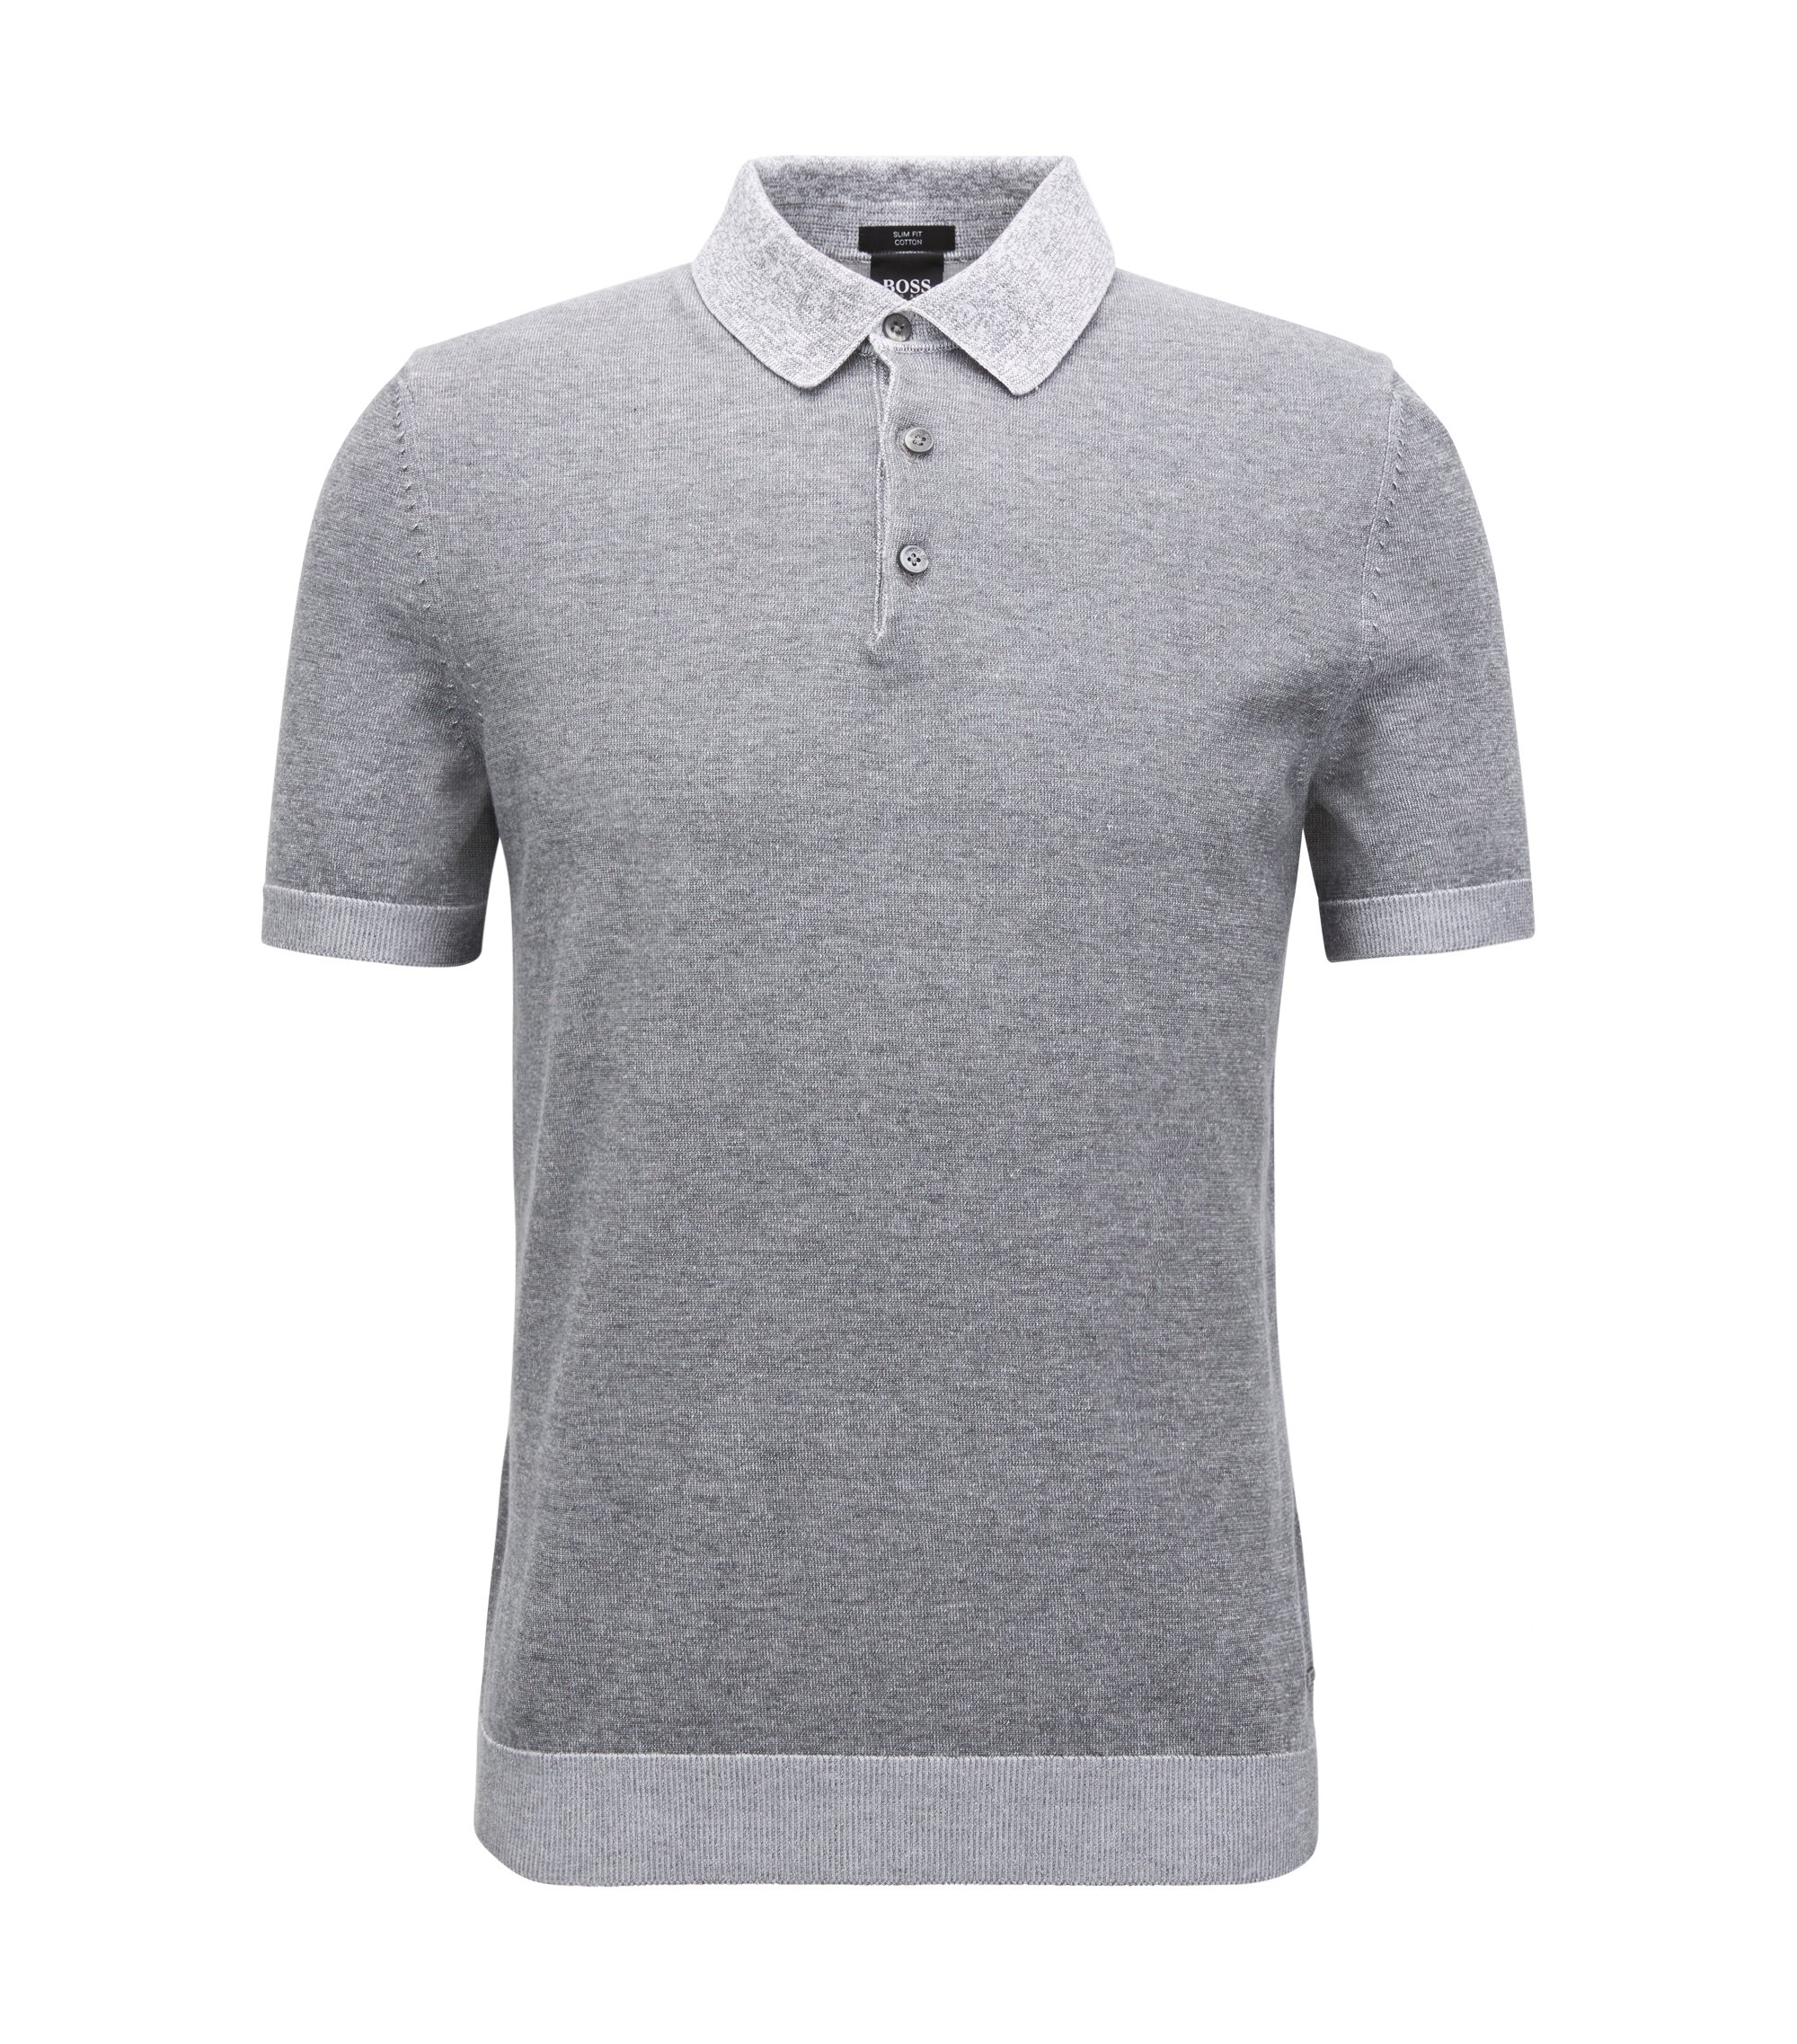 Colorblocked Cotton Polo Shirt, Slim Fit | Delio, Grey